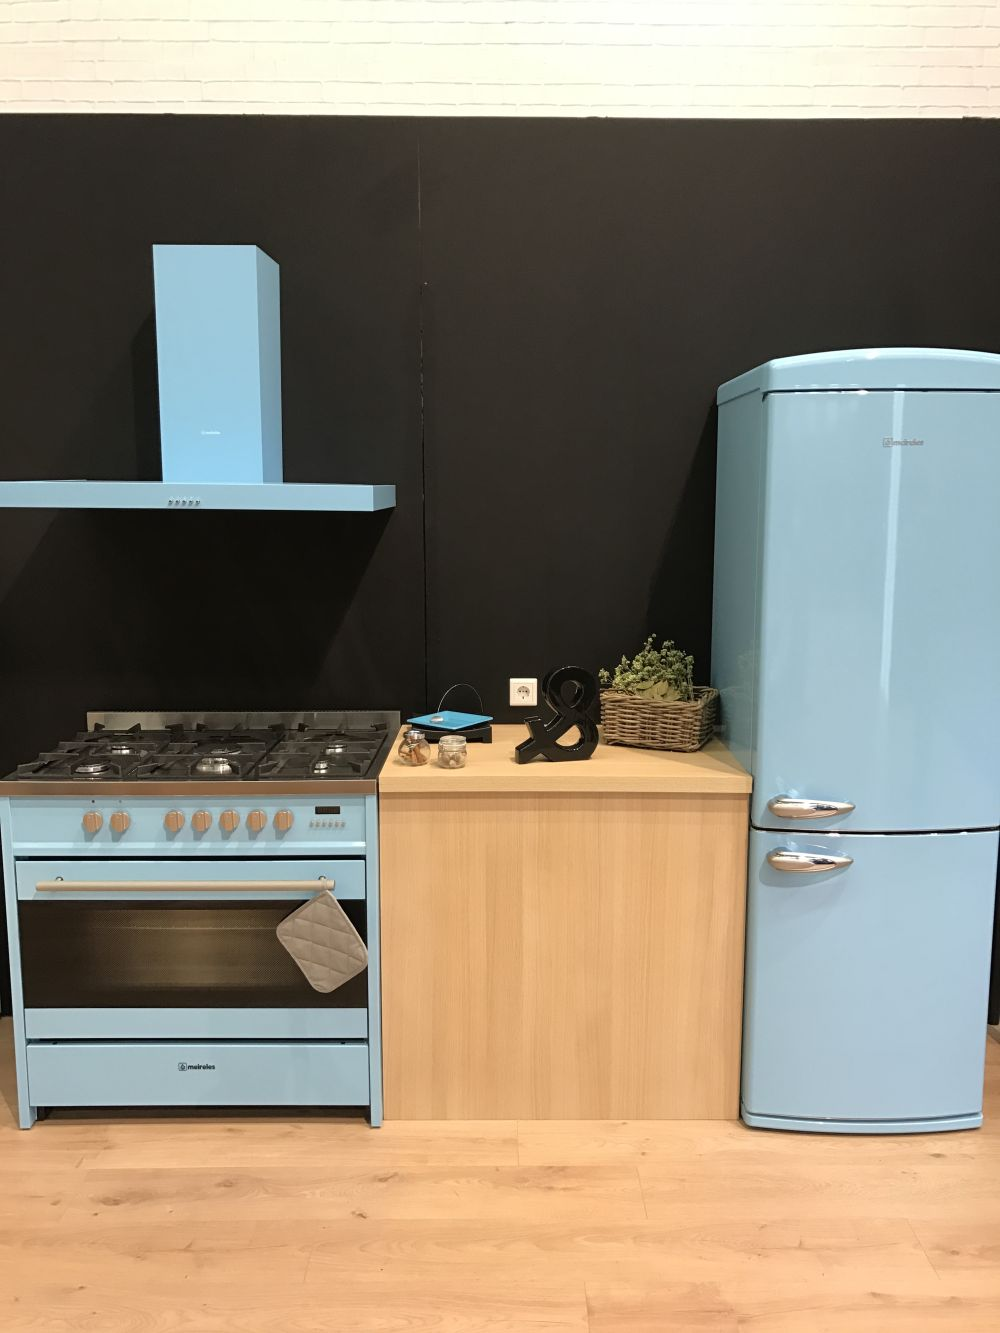 Some colors are less common when it comes to appliances. This light blue is one of them